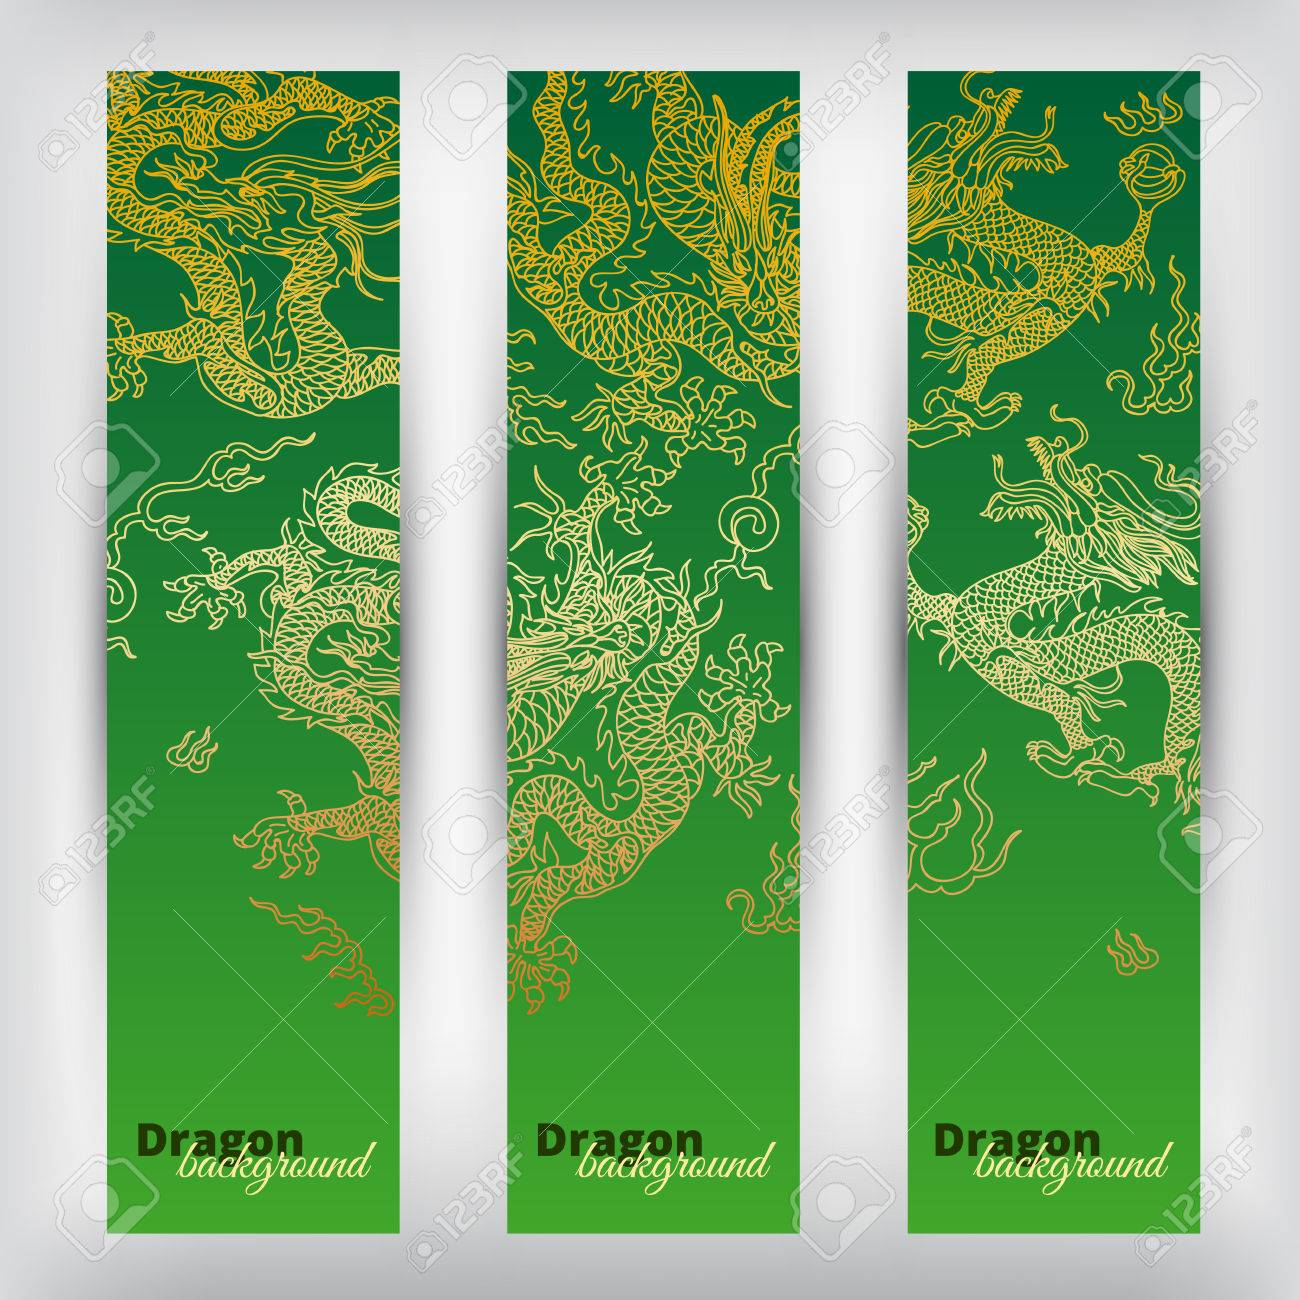 Green Dragons Banners Premium Banners